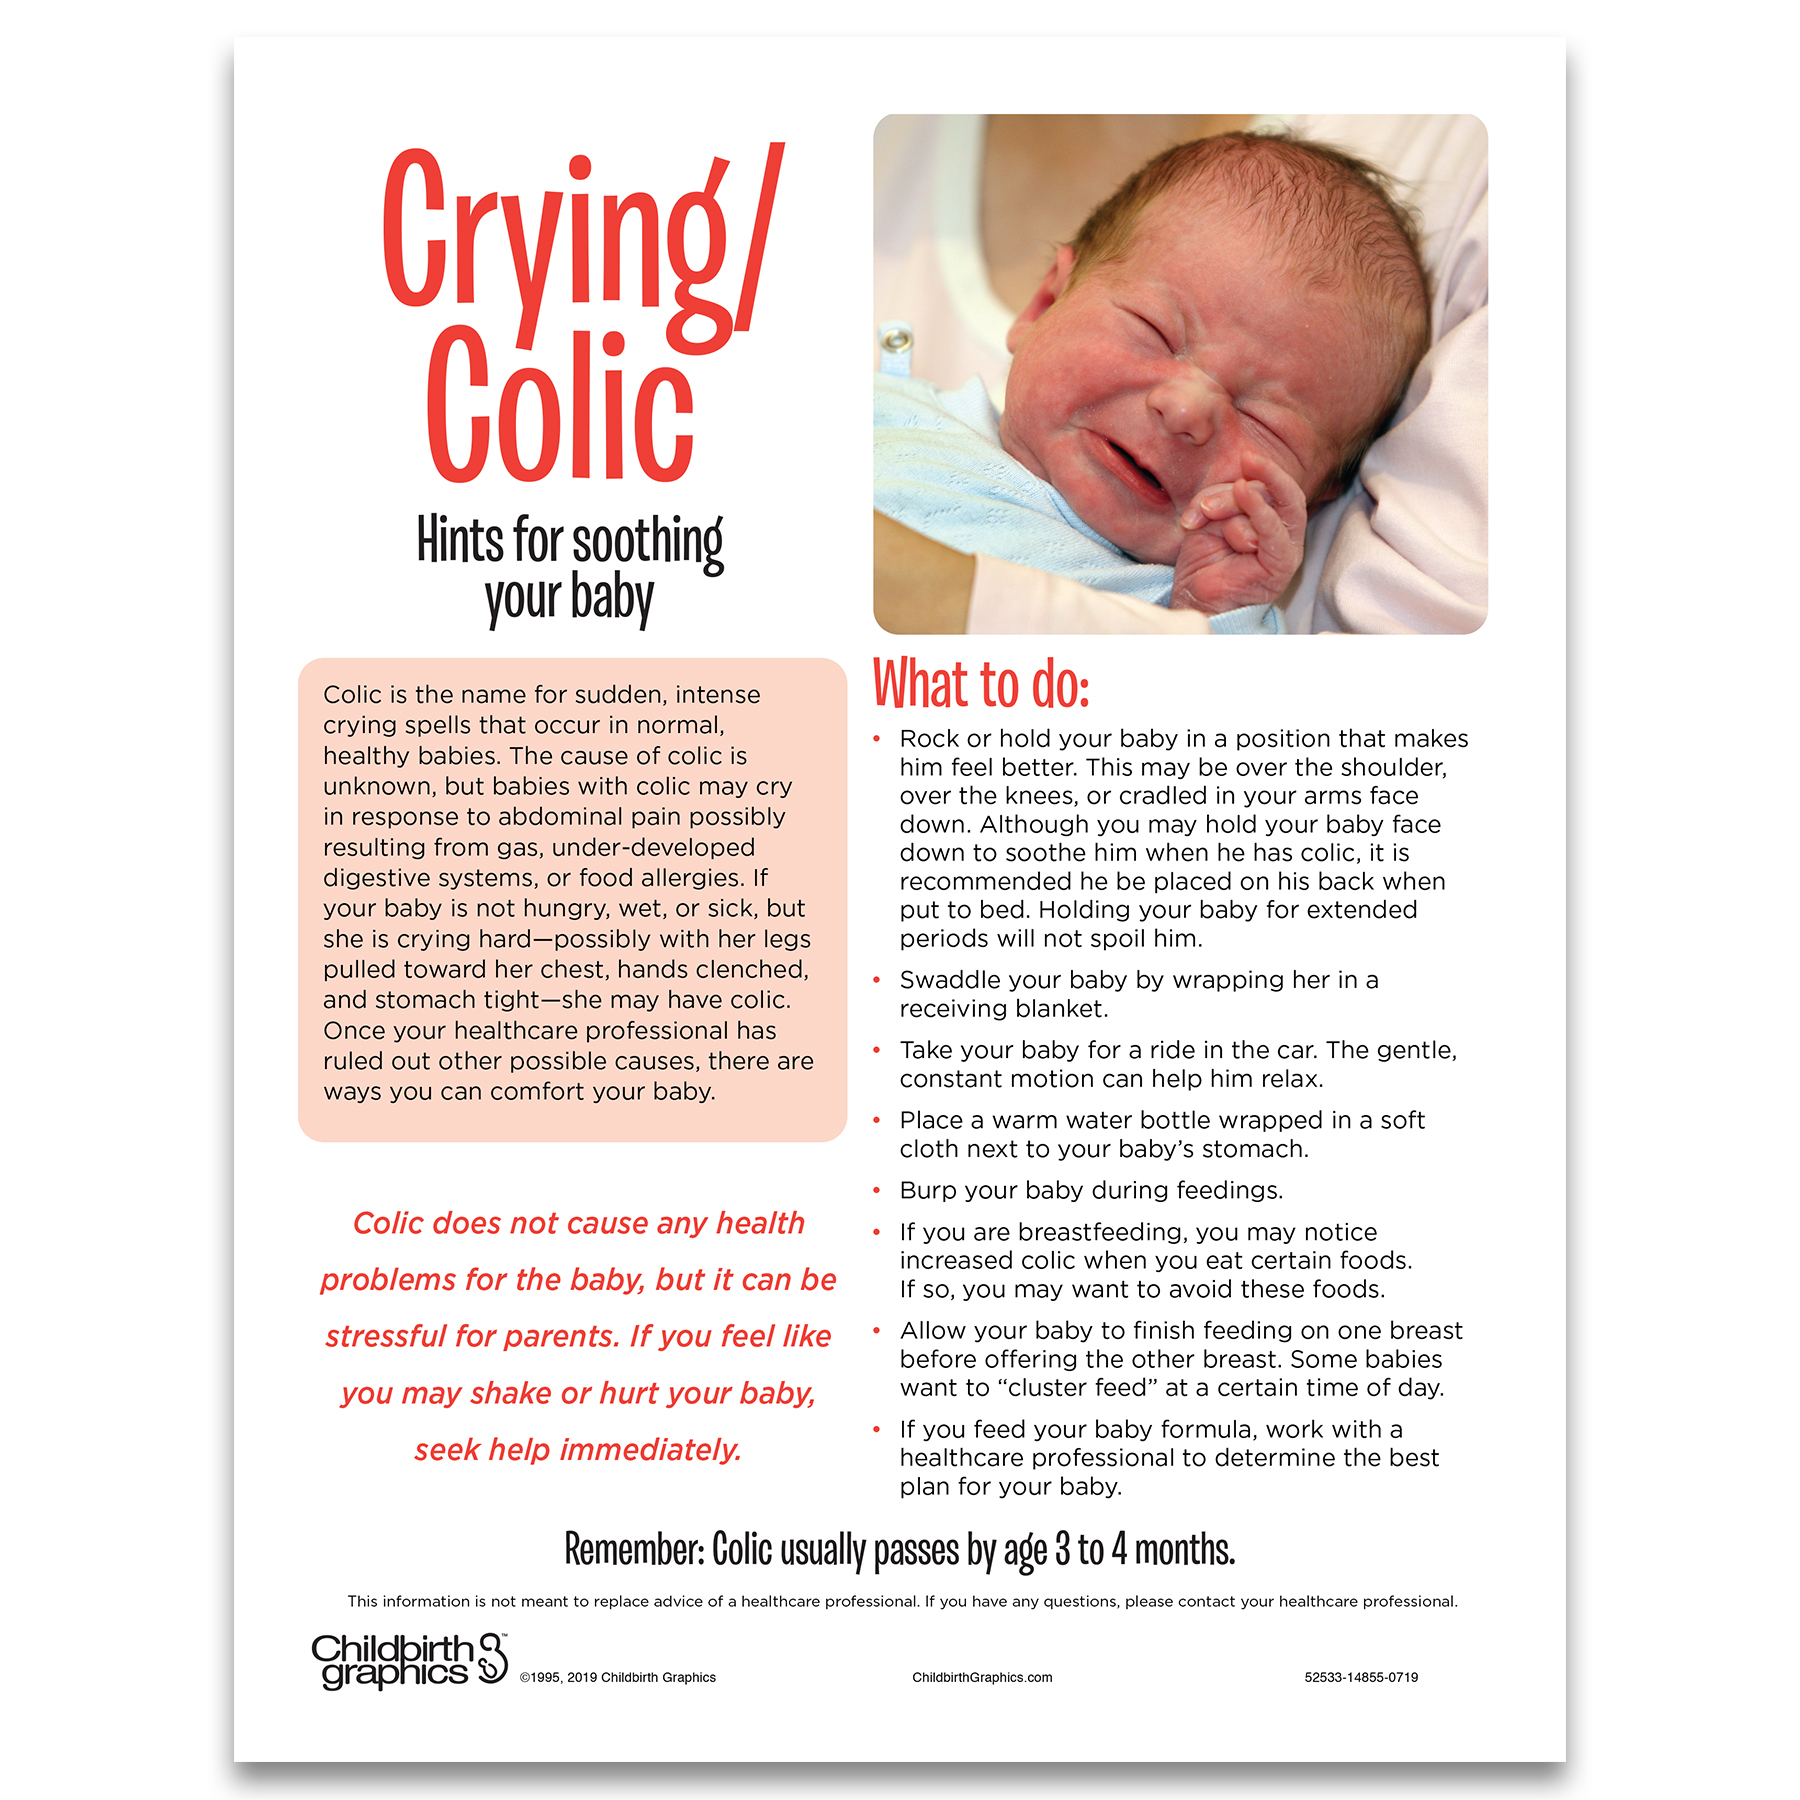 Crying Colic 2-color illustrated tear pad English side, hints for soothing baby, Childbirth Graphics, 52533